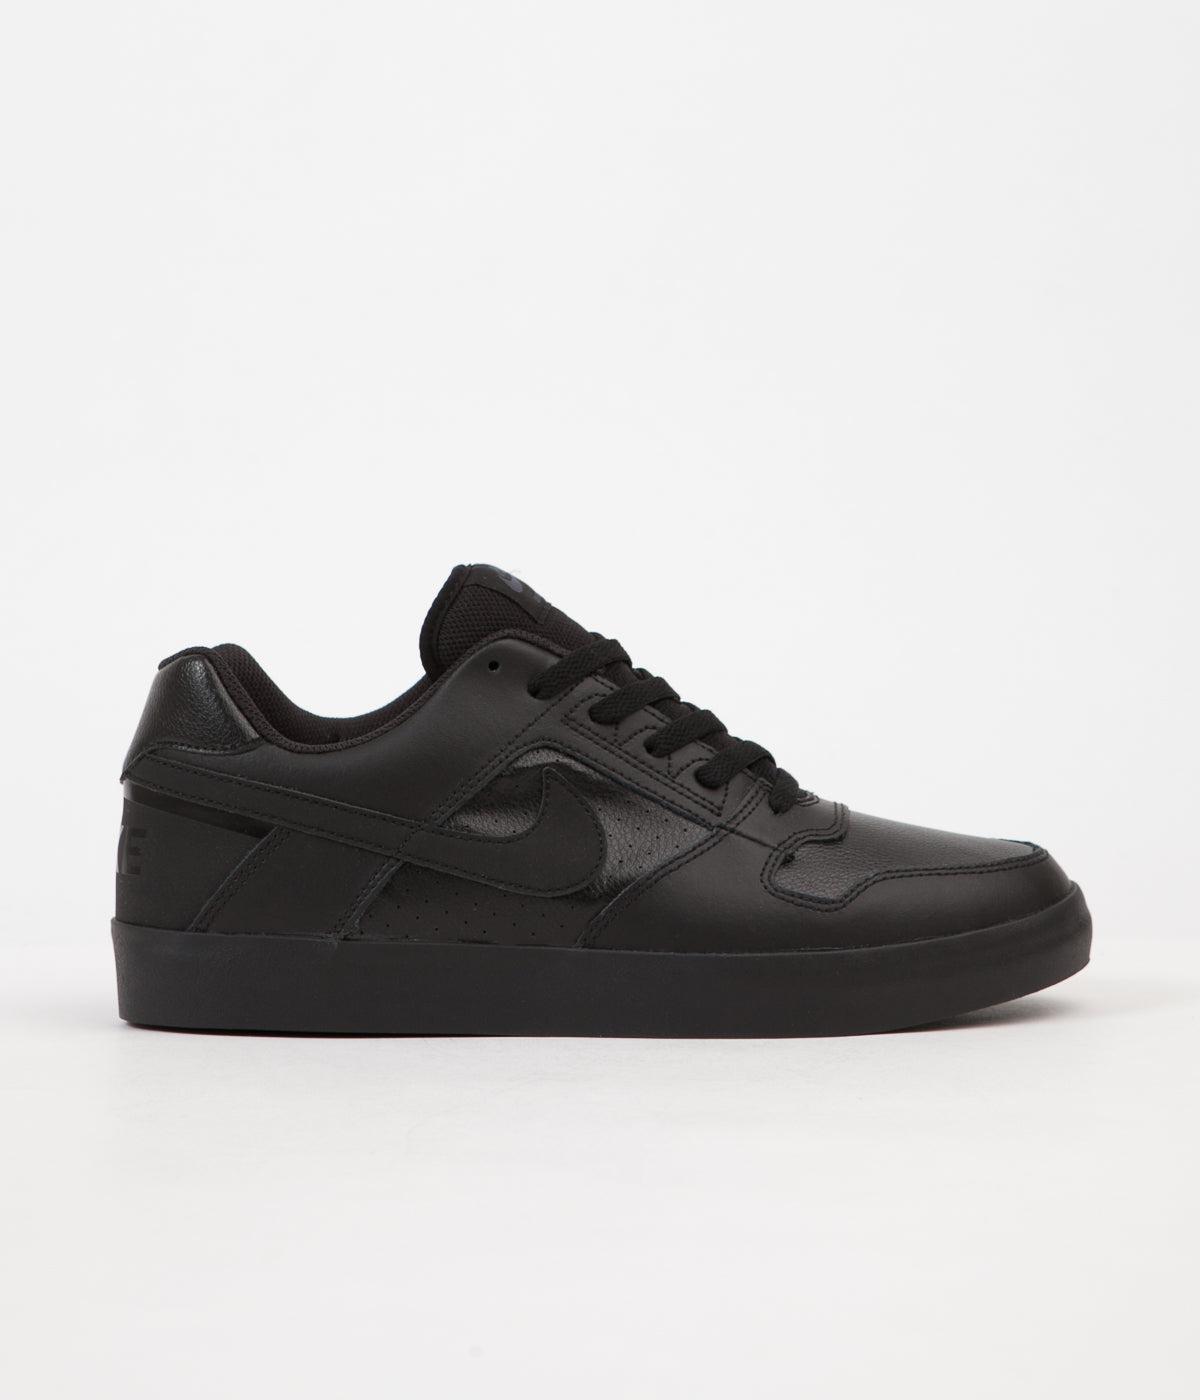 brand new 35393 3d7a7 Nike SB Delta Force Vulc Shoes - Black   Black - Anthracite